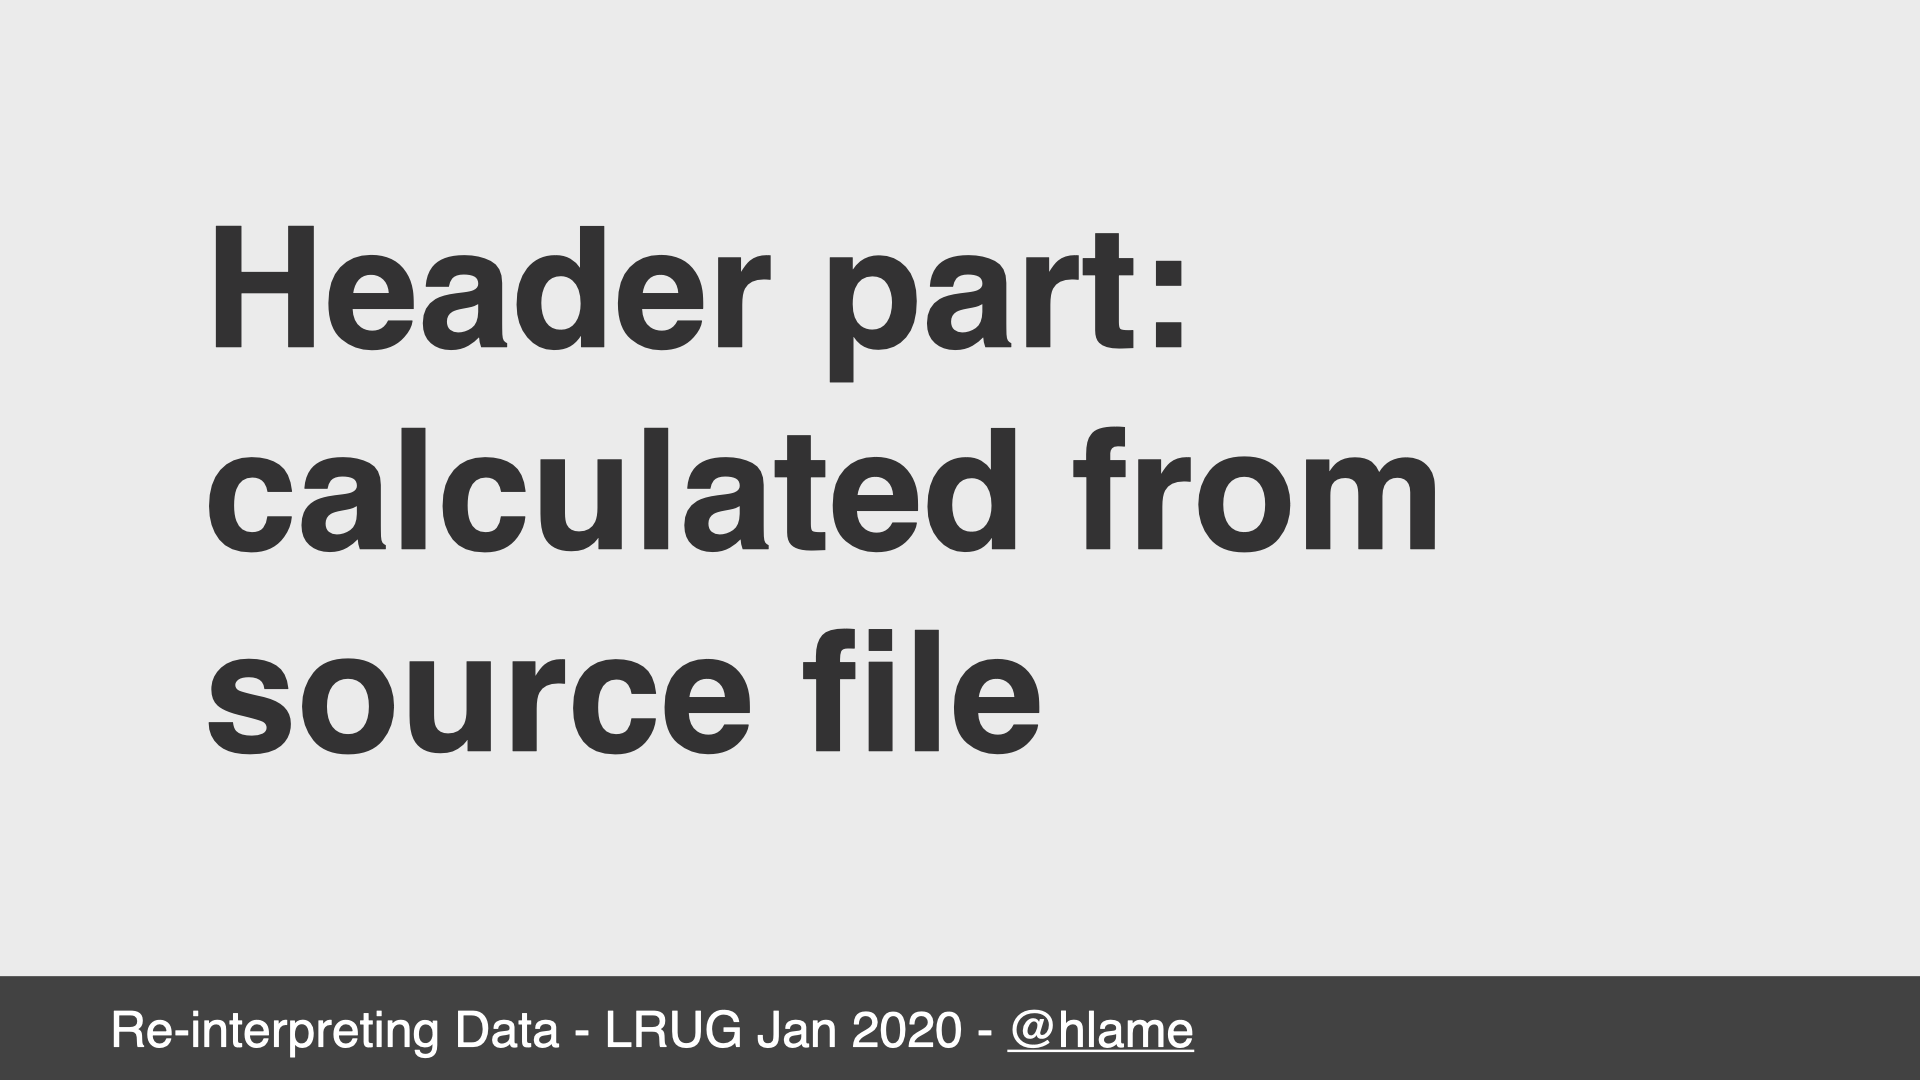 text: Header part calculated from source file